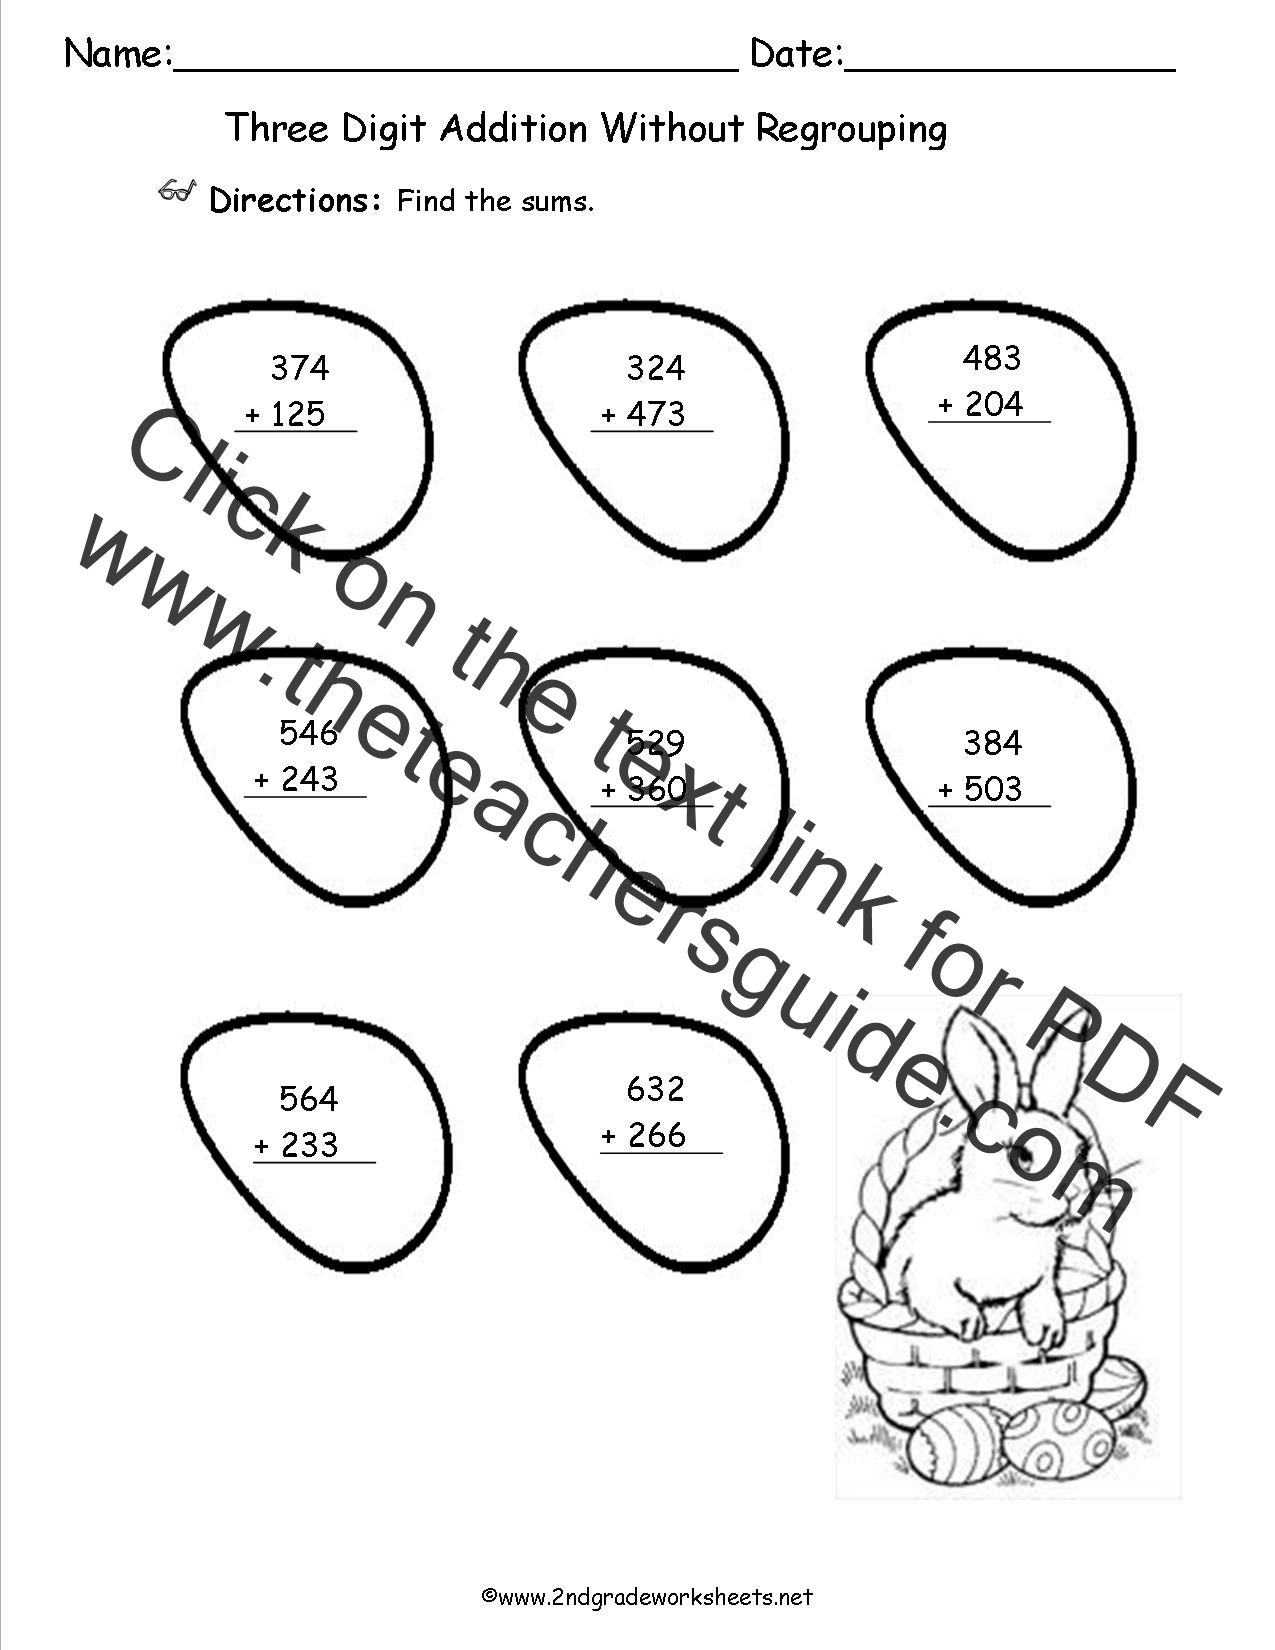 Easter Worksheets and Printouts – Two Digit Subtraction Without Regrouping Worksheets